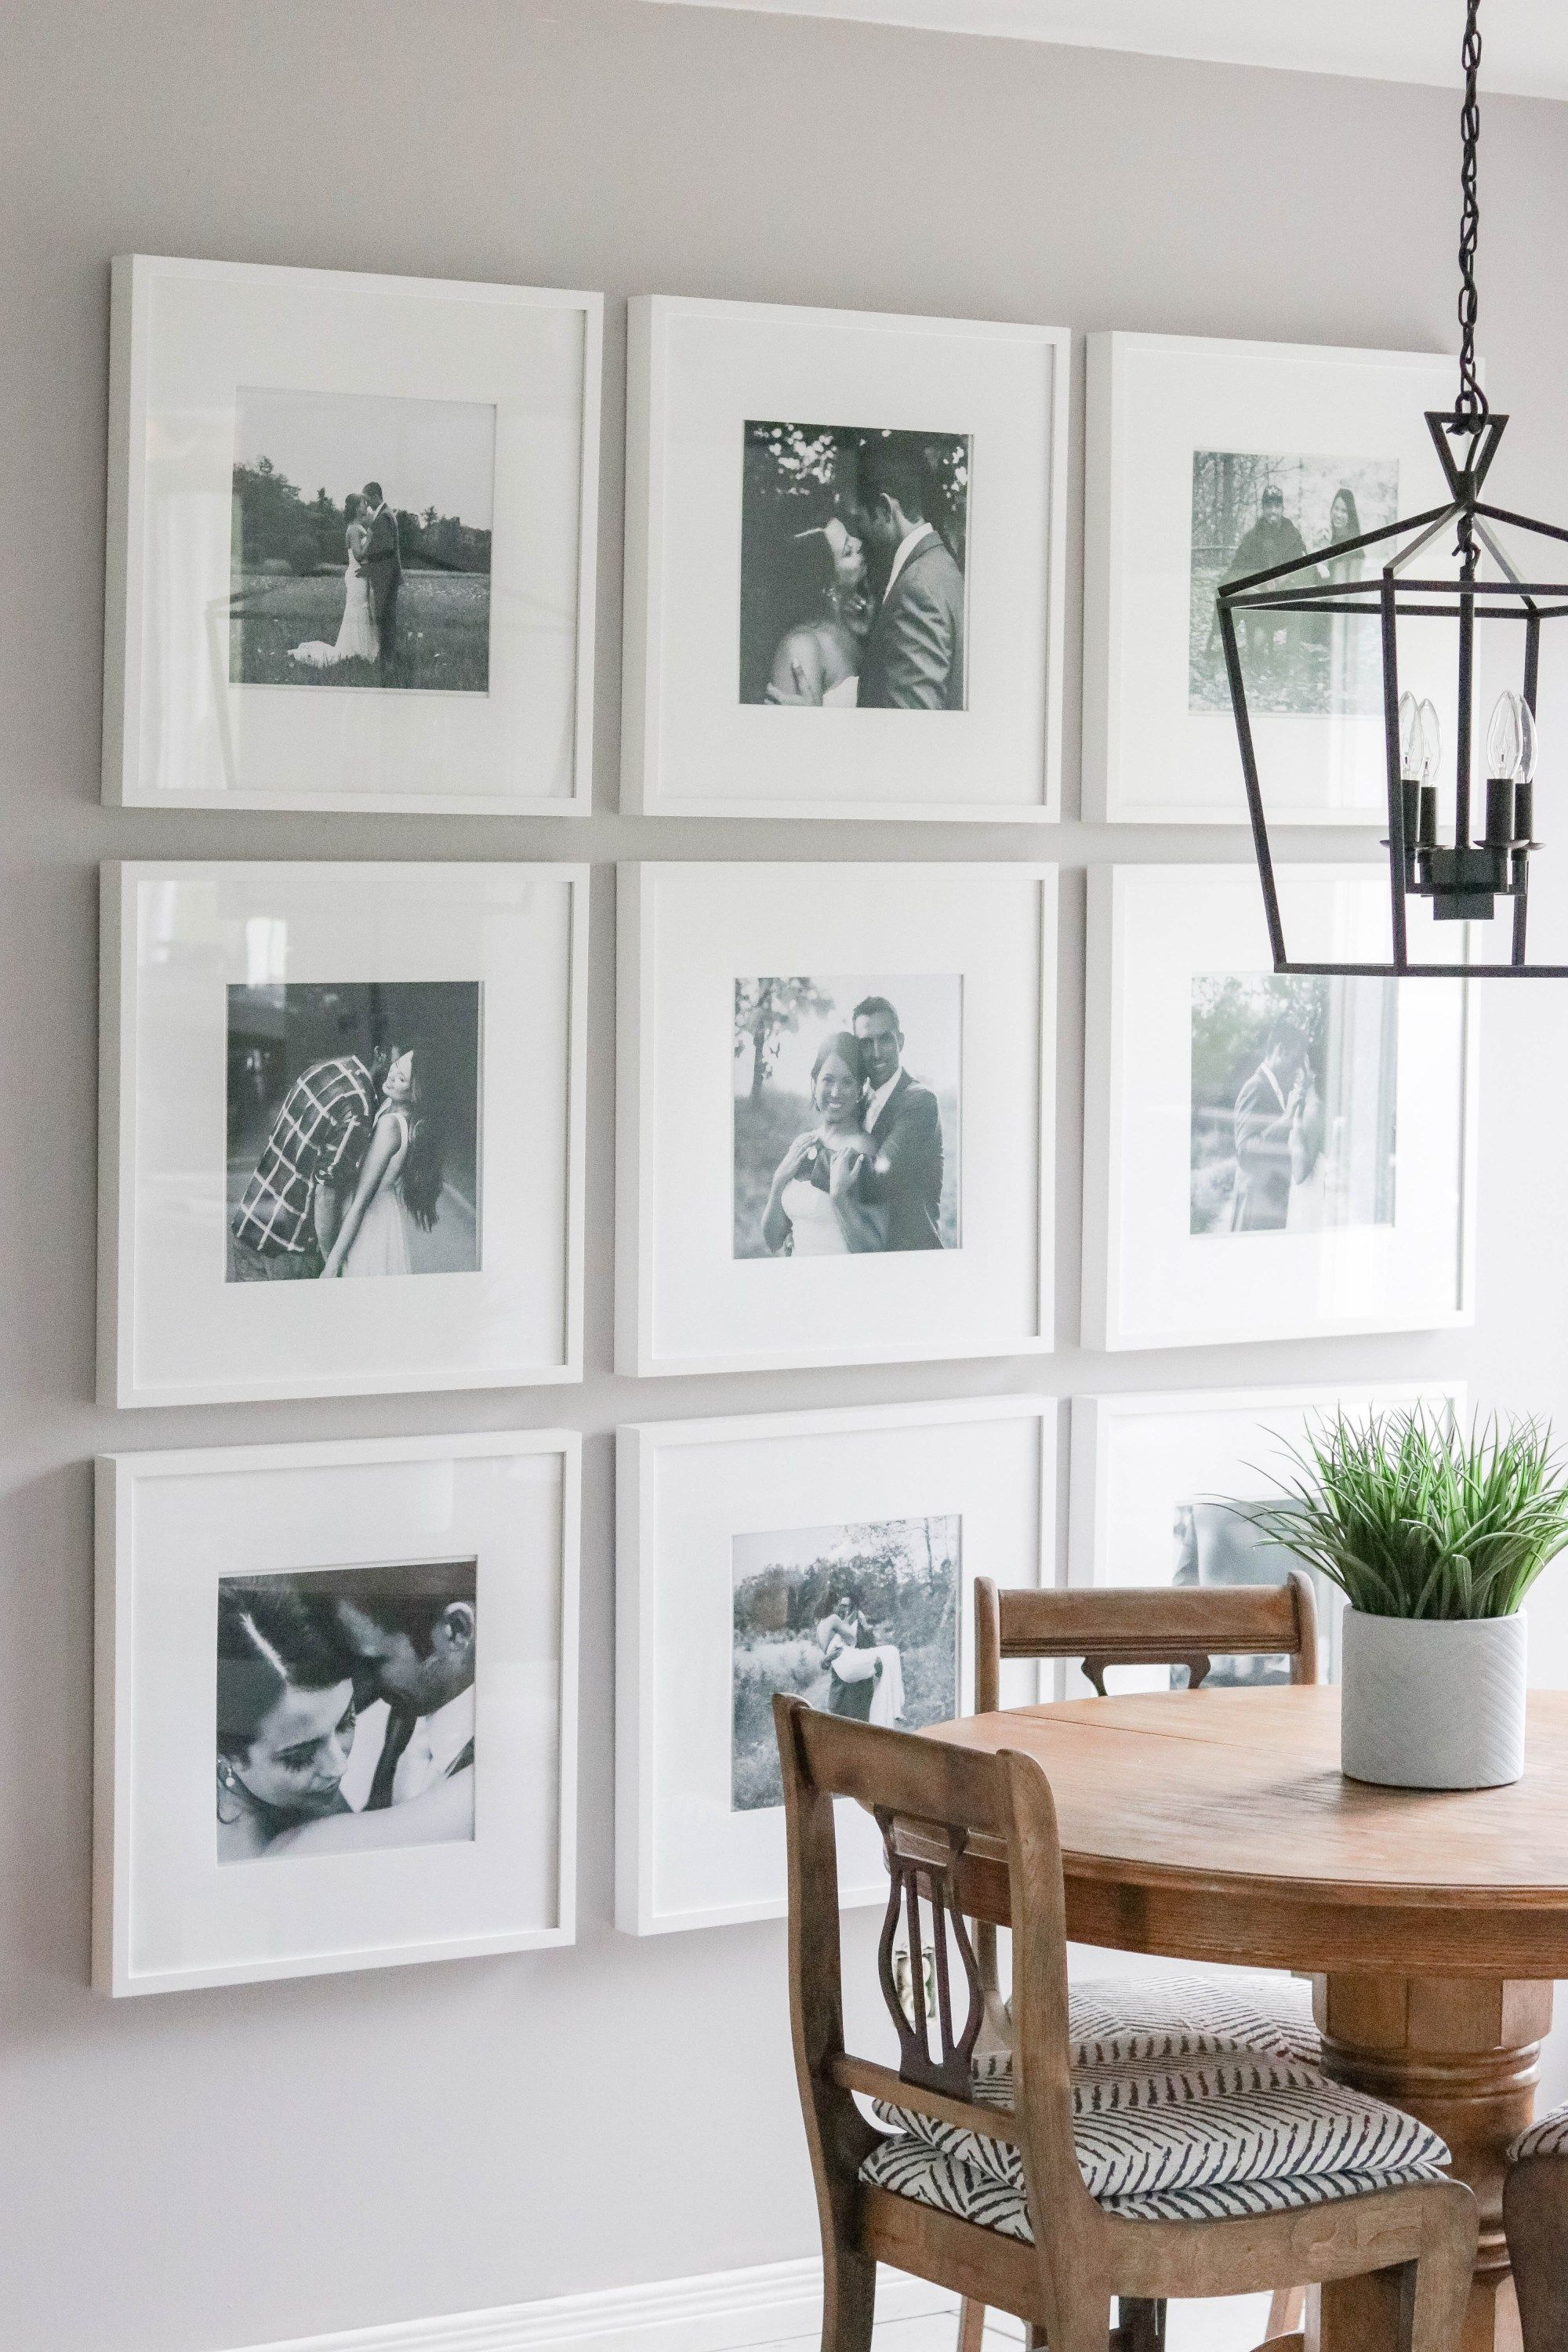 15 Inspirational Gallery Wall Ideas for Your Home